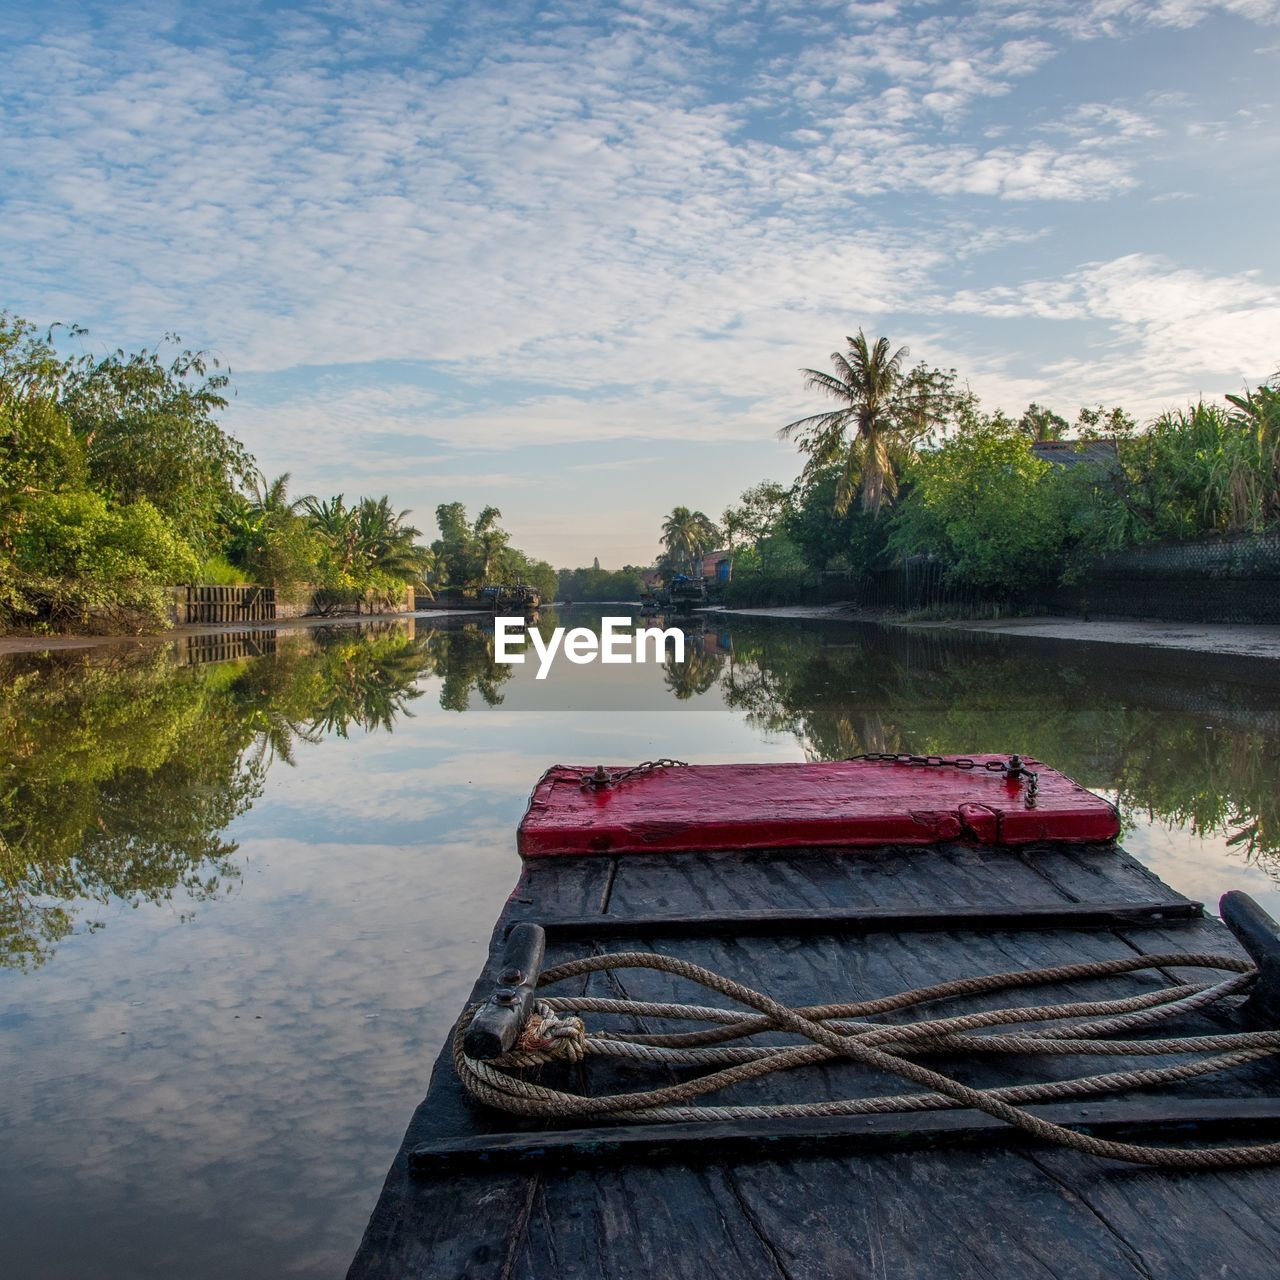 water, nautical vessel, lake, transportation, tree, boat, nature, no people, reflection, moored, mode of transport, outdoors, day, tranquility, tranquil scene, sky, cloud - sky, wooden raft, beauty in nature, scenics, oar